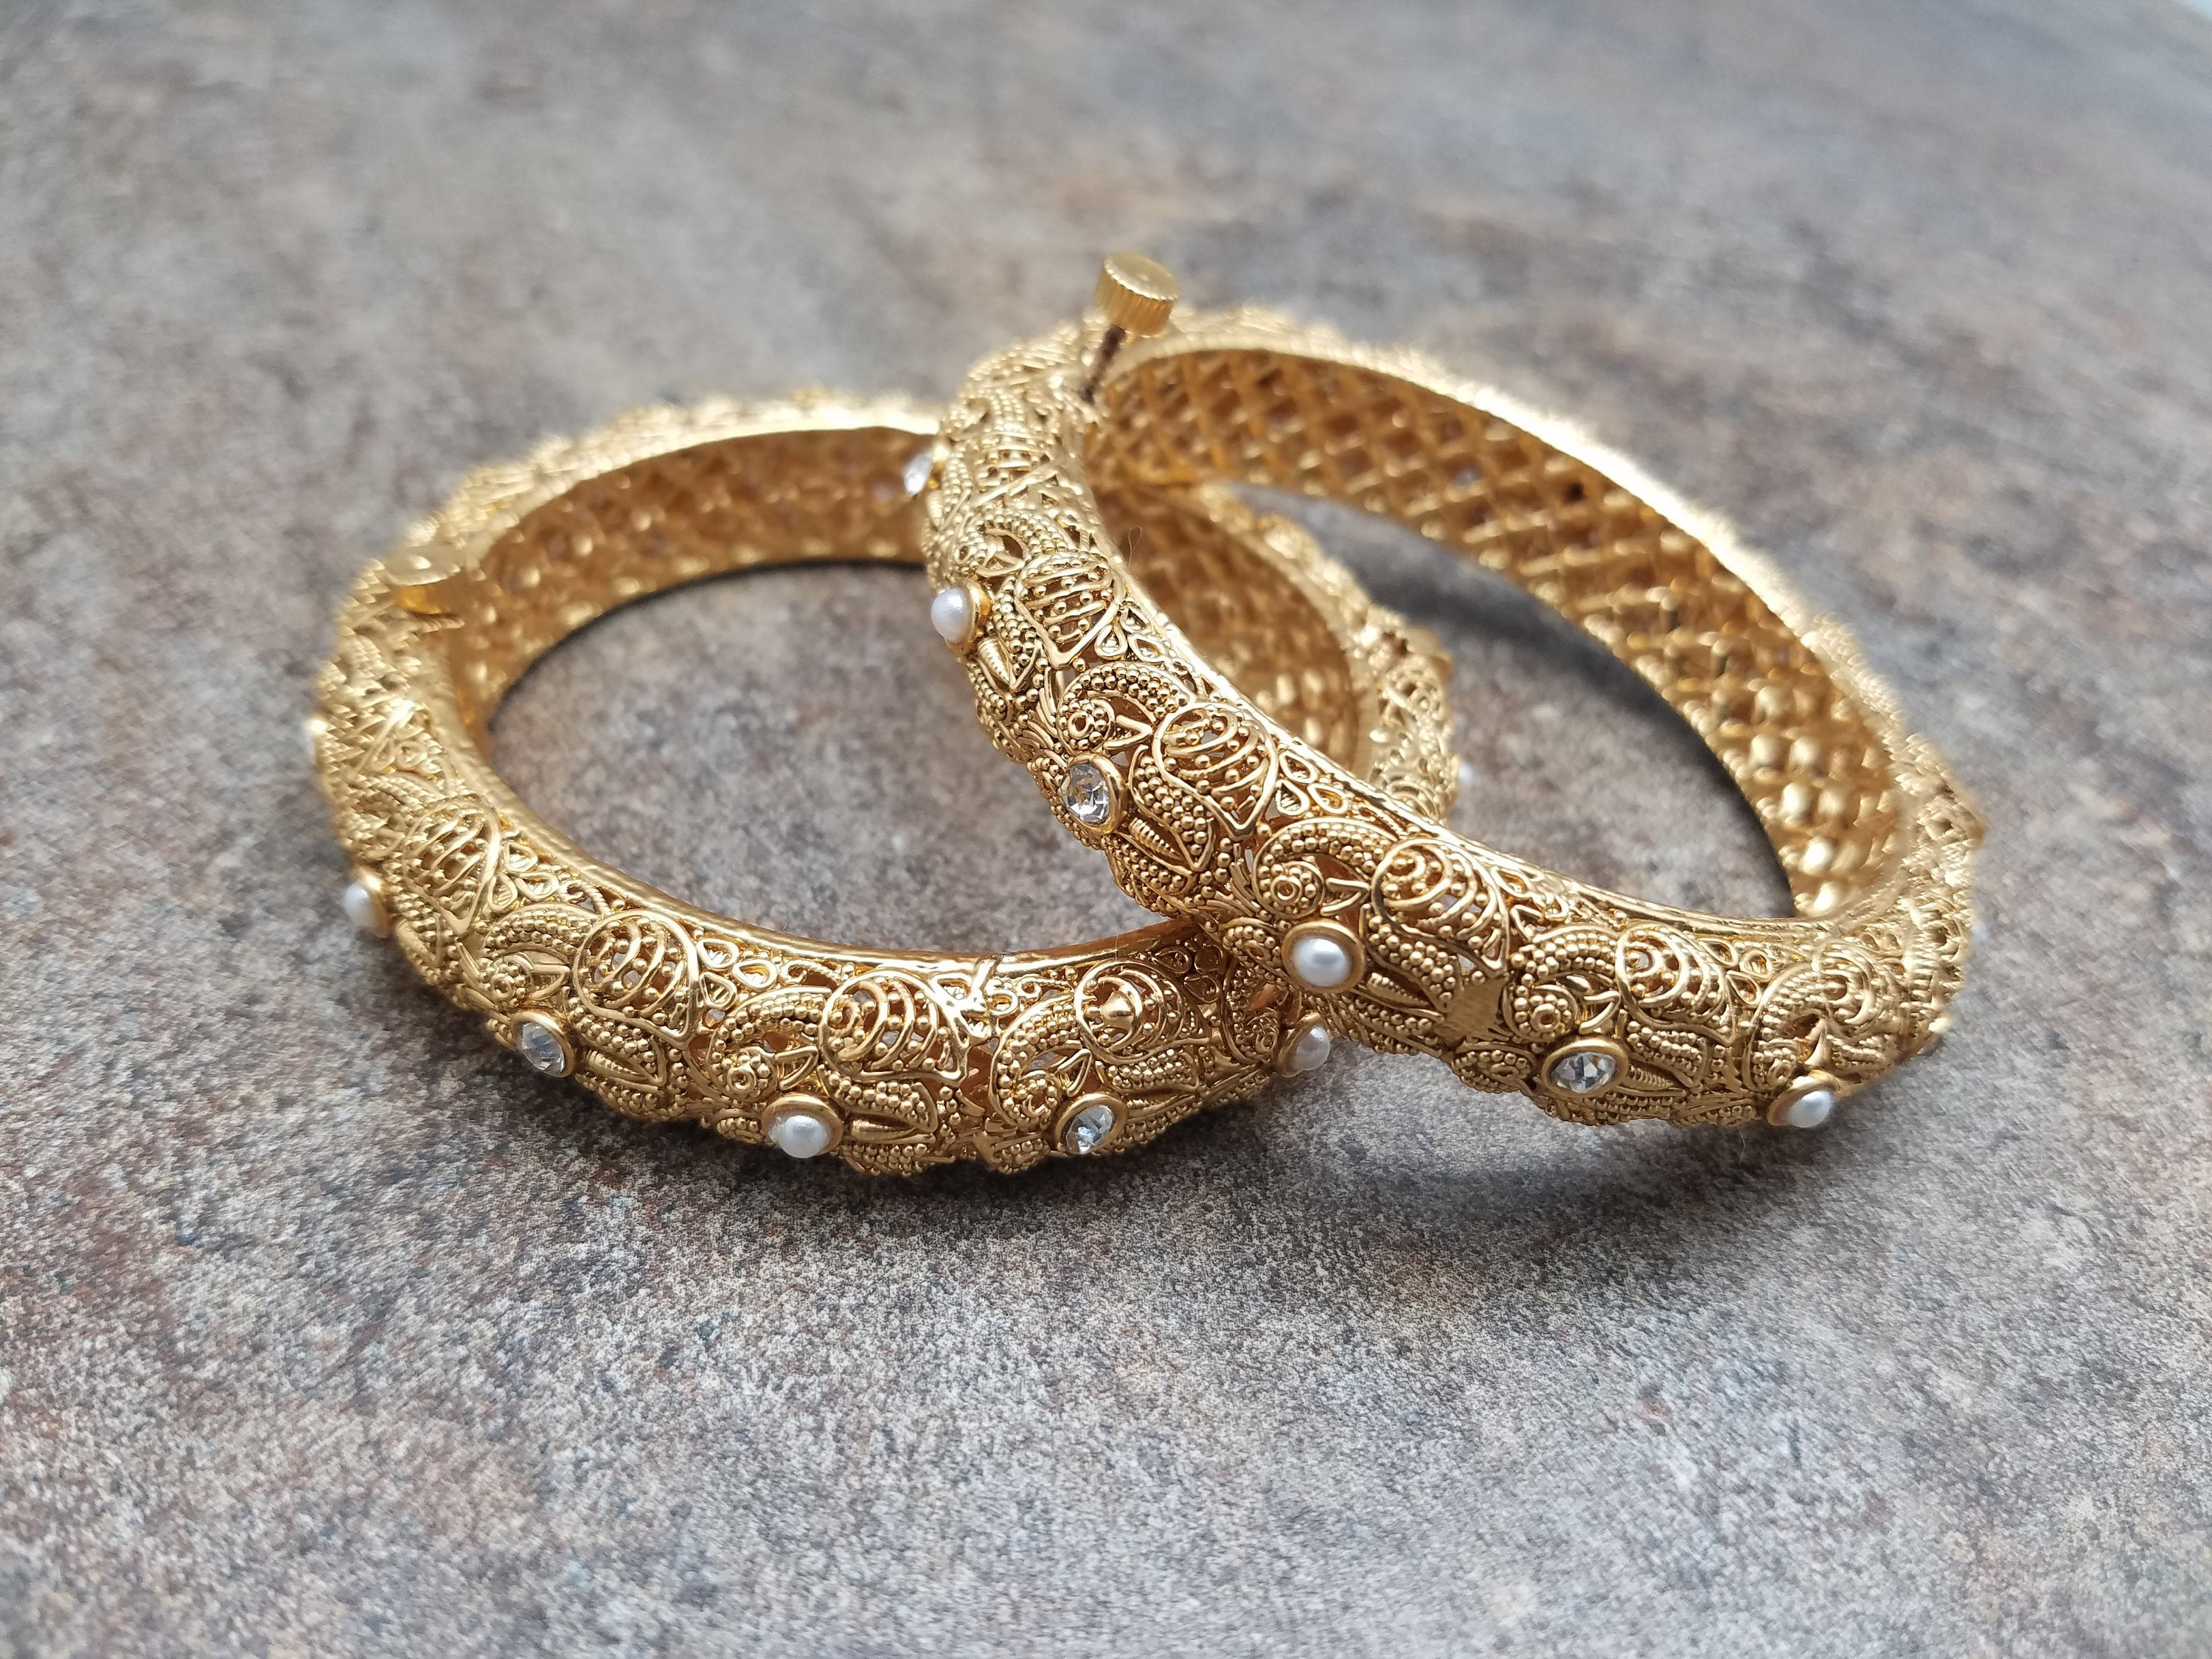 Pair of Bangles, White Pearl,White CZ Gold Filigree Kada, Size: 2/4